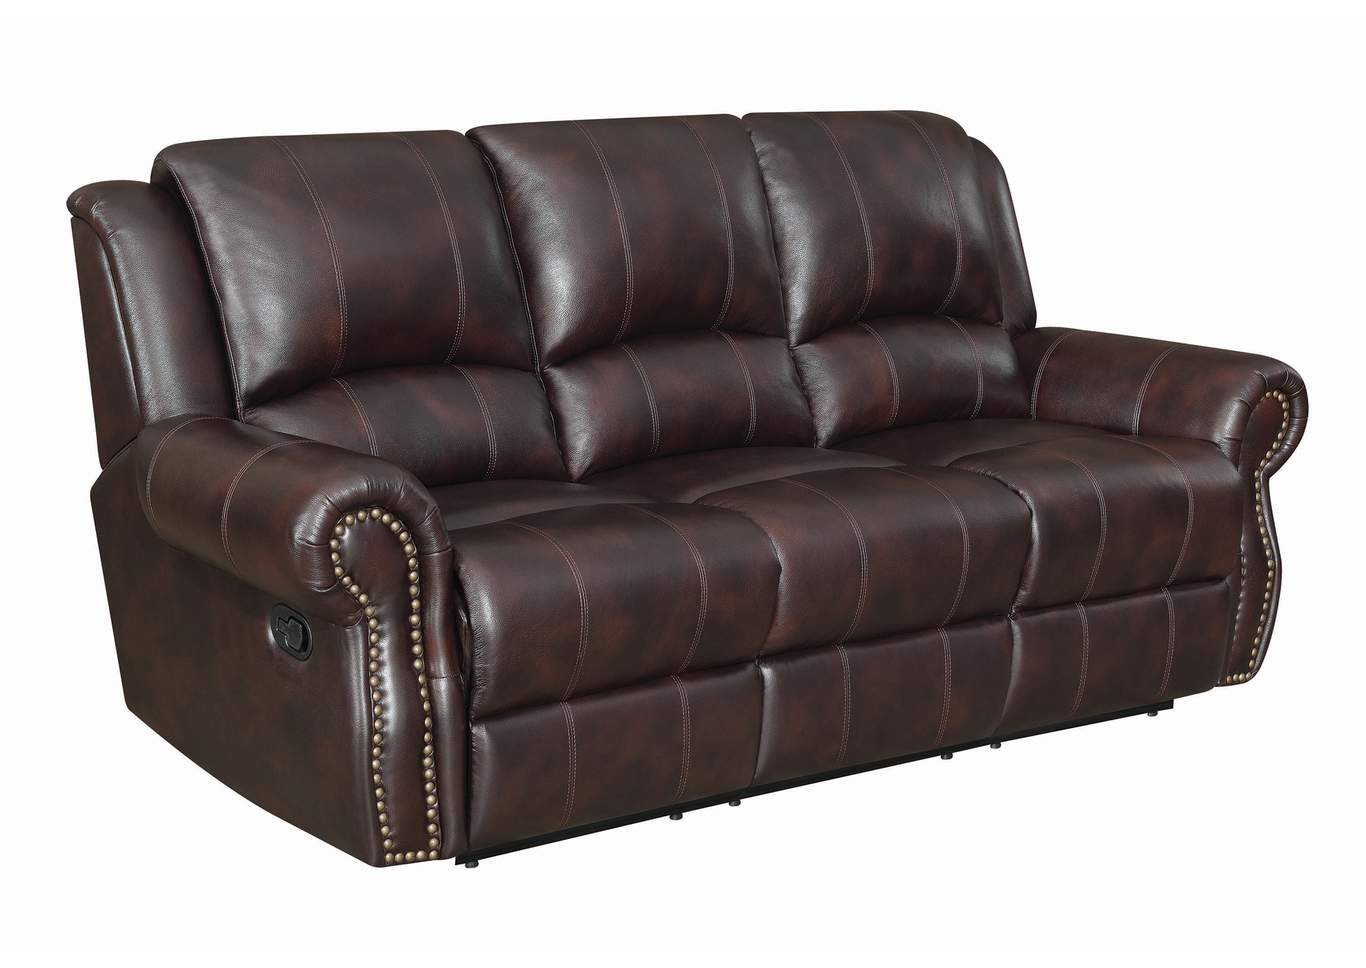 Woody Brown Sir Rawlinson Traditional Burgundy Motion Sofa,Coaster Furniture